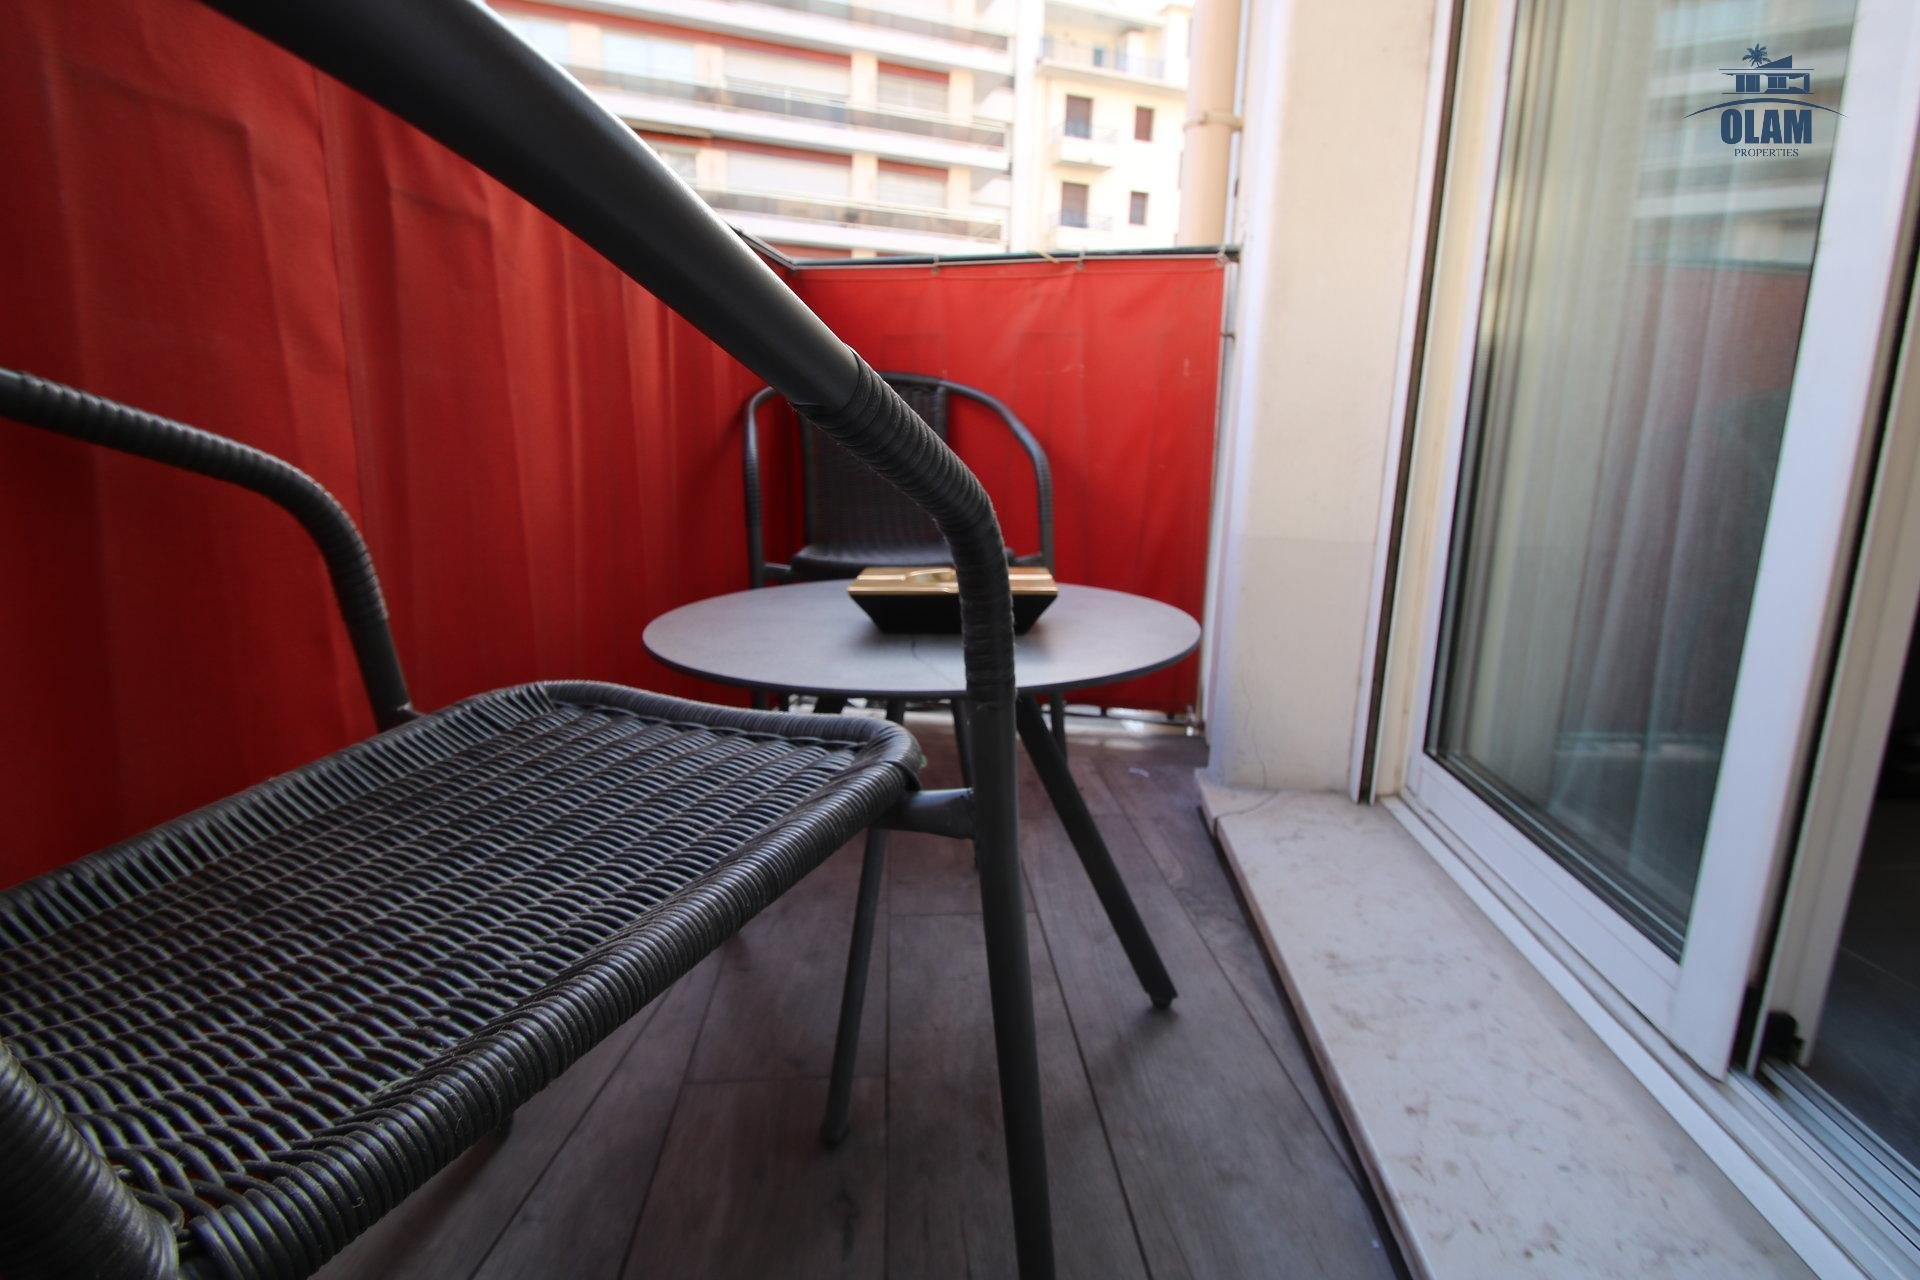 2 bedroom apartment, balcony, Croisette, Cannes, French Riviera